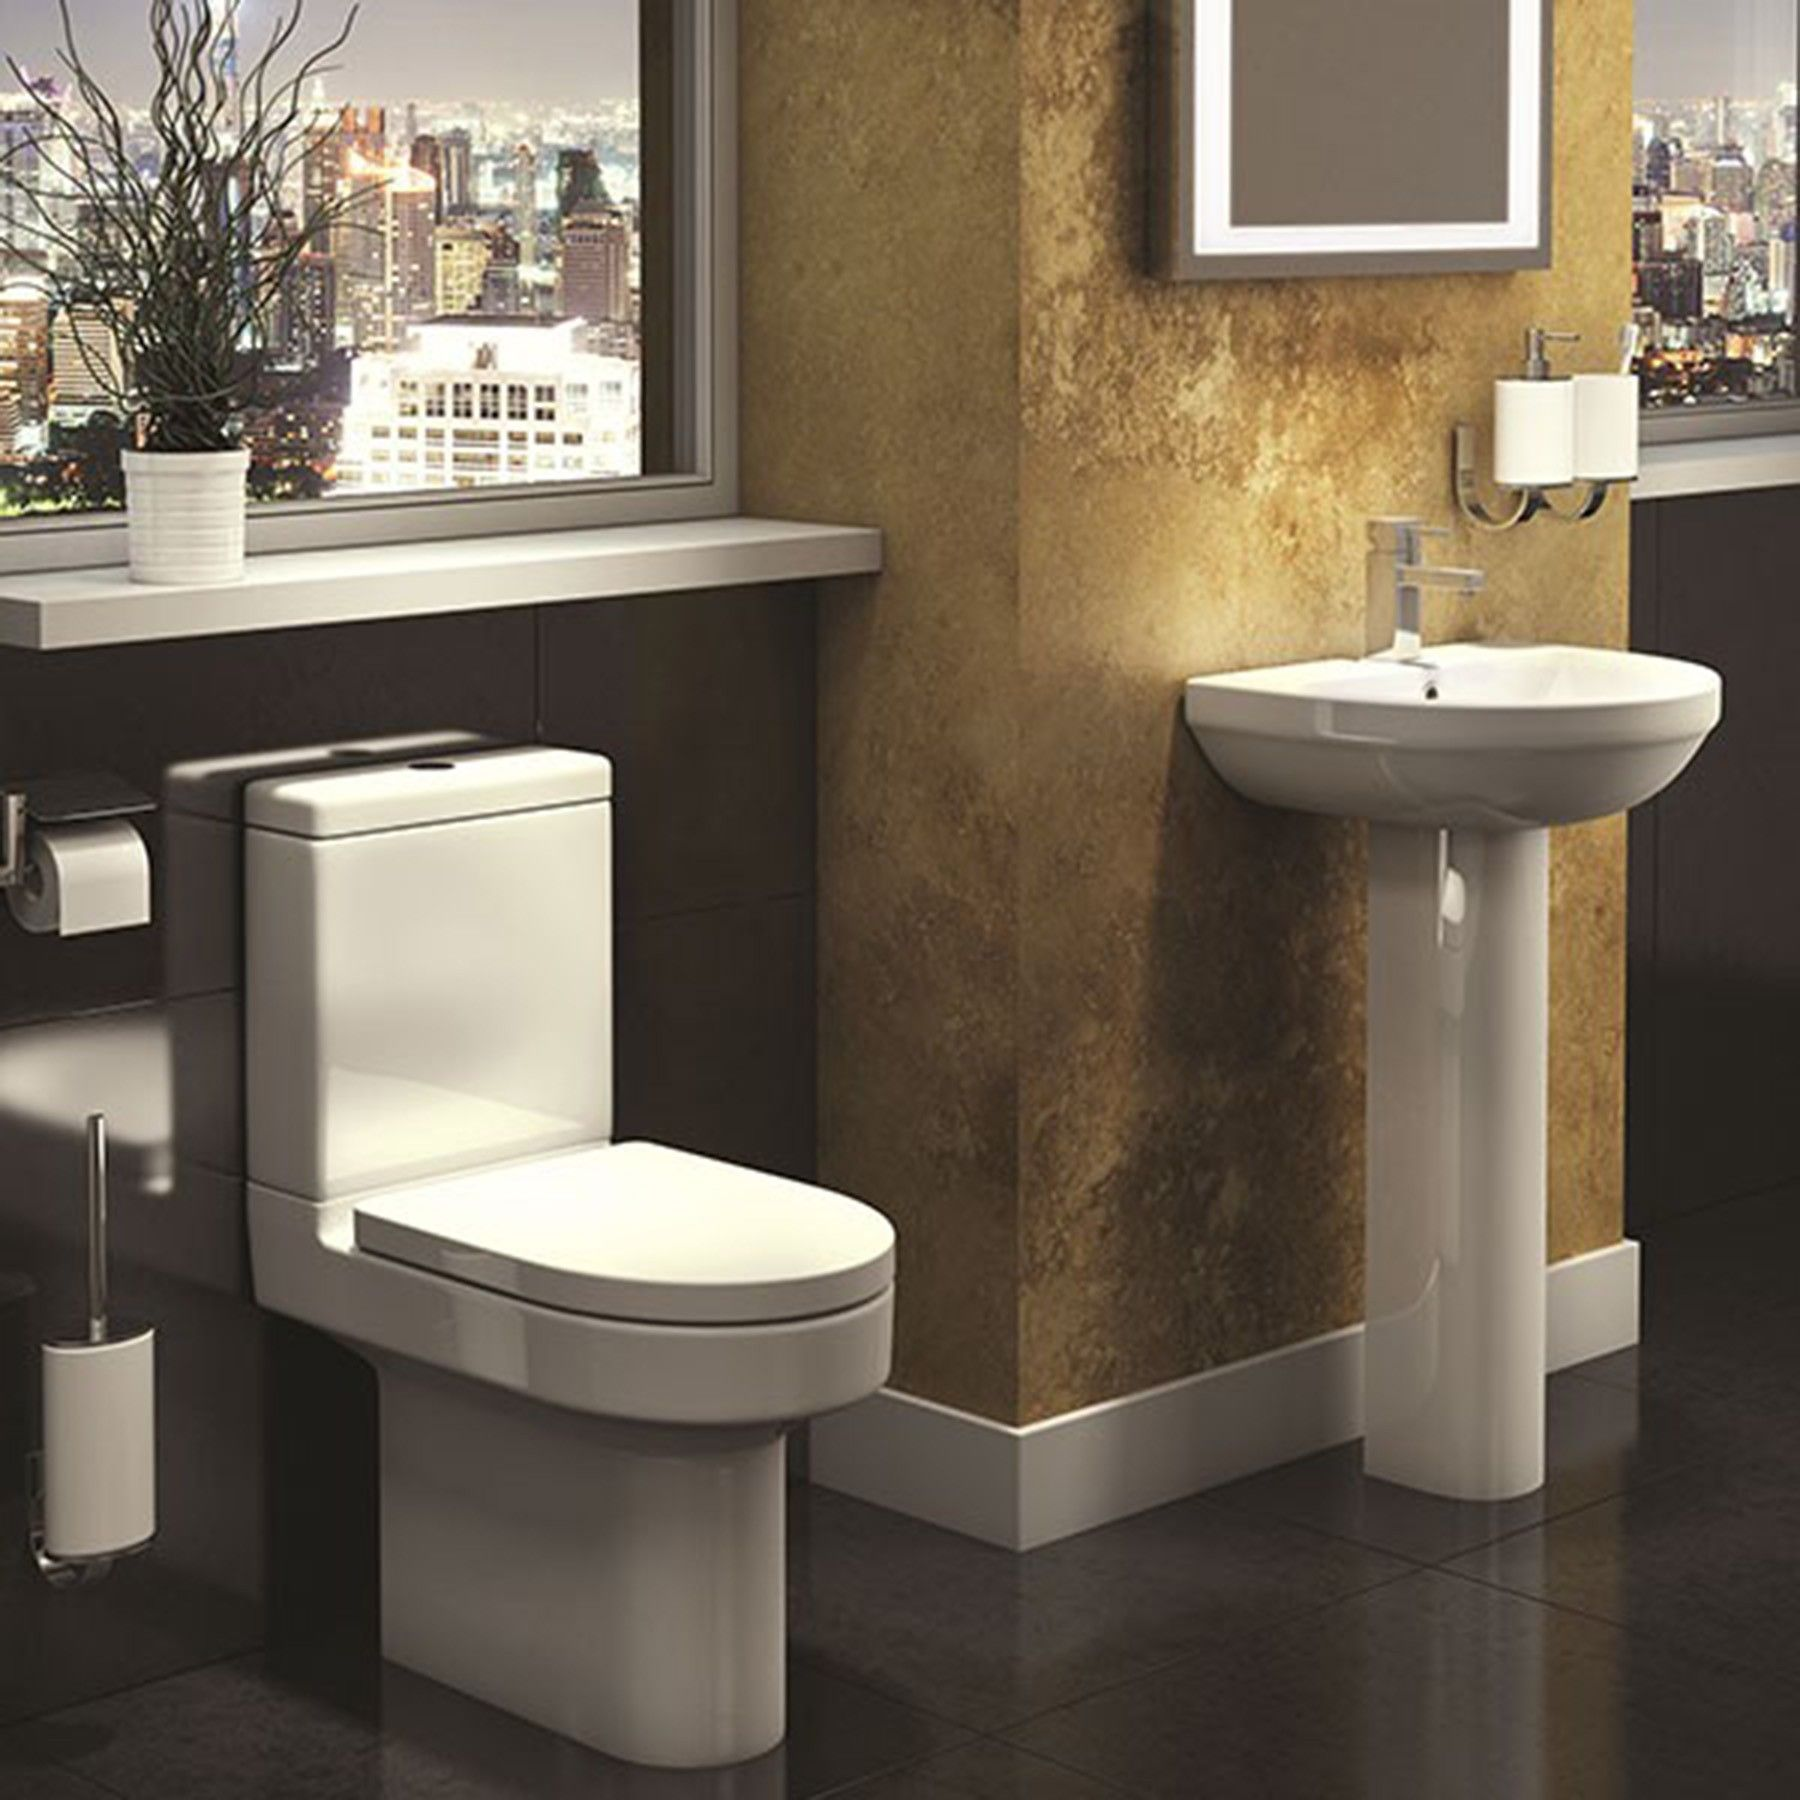 Shop A Wide Range Of Latest Designs In Our Bathroom Suites Browse Through A Great Selection Toilet And Sink Set Short Projection Toilet Close Coupled Toilets